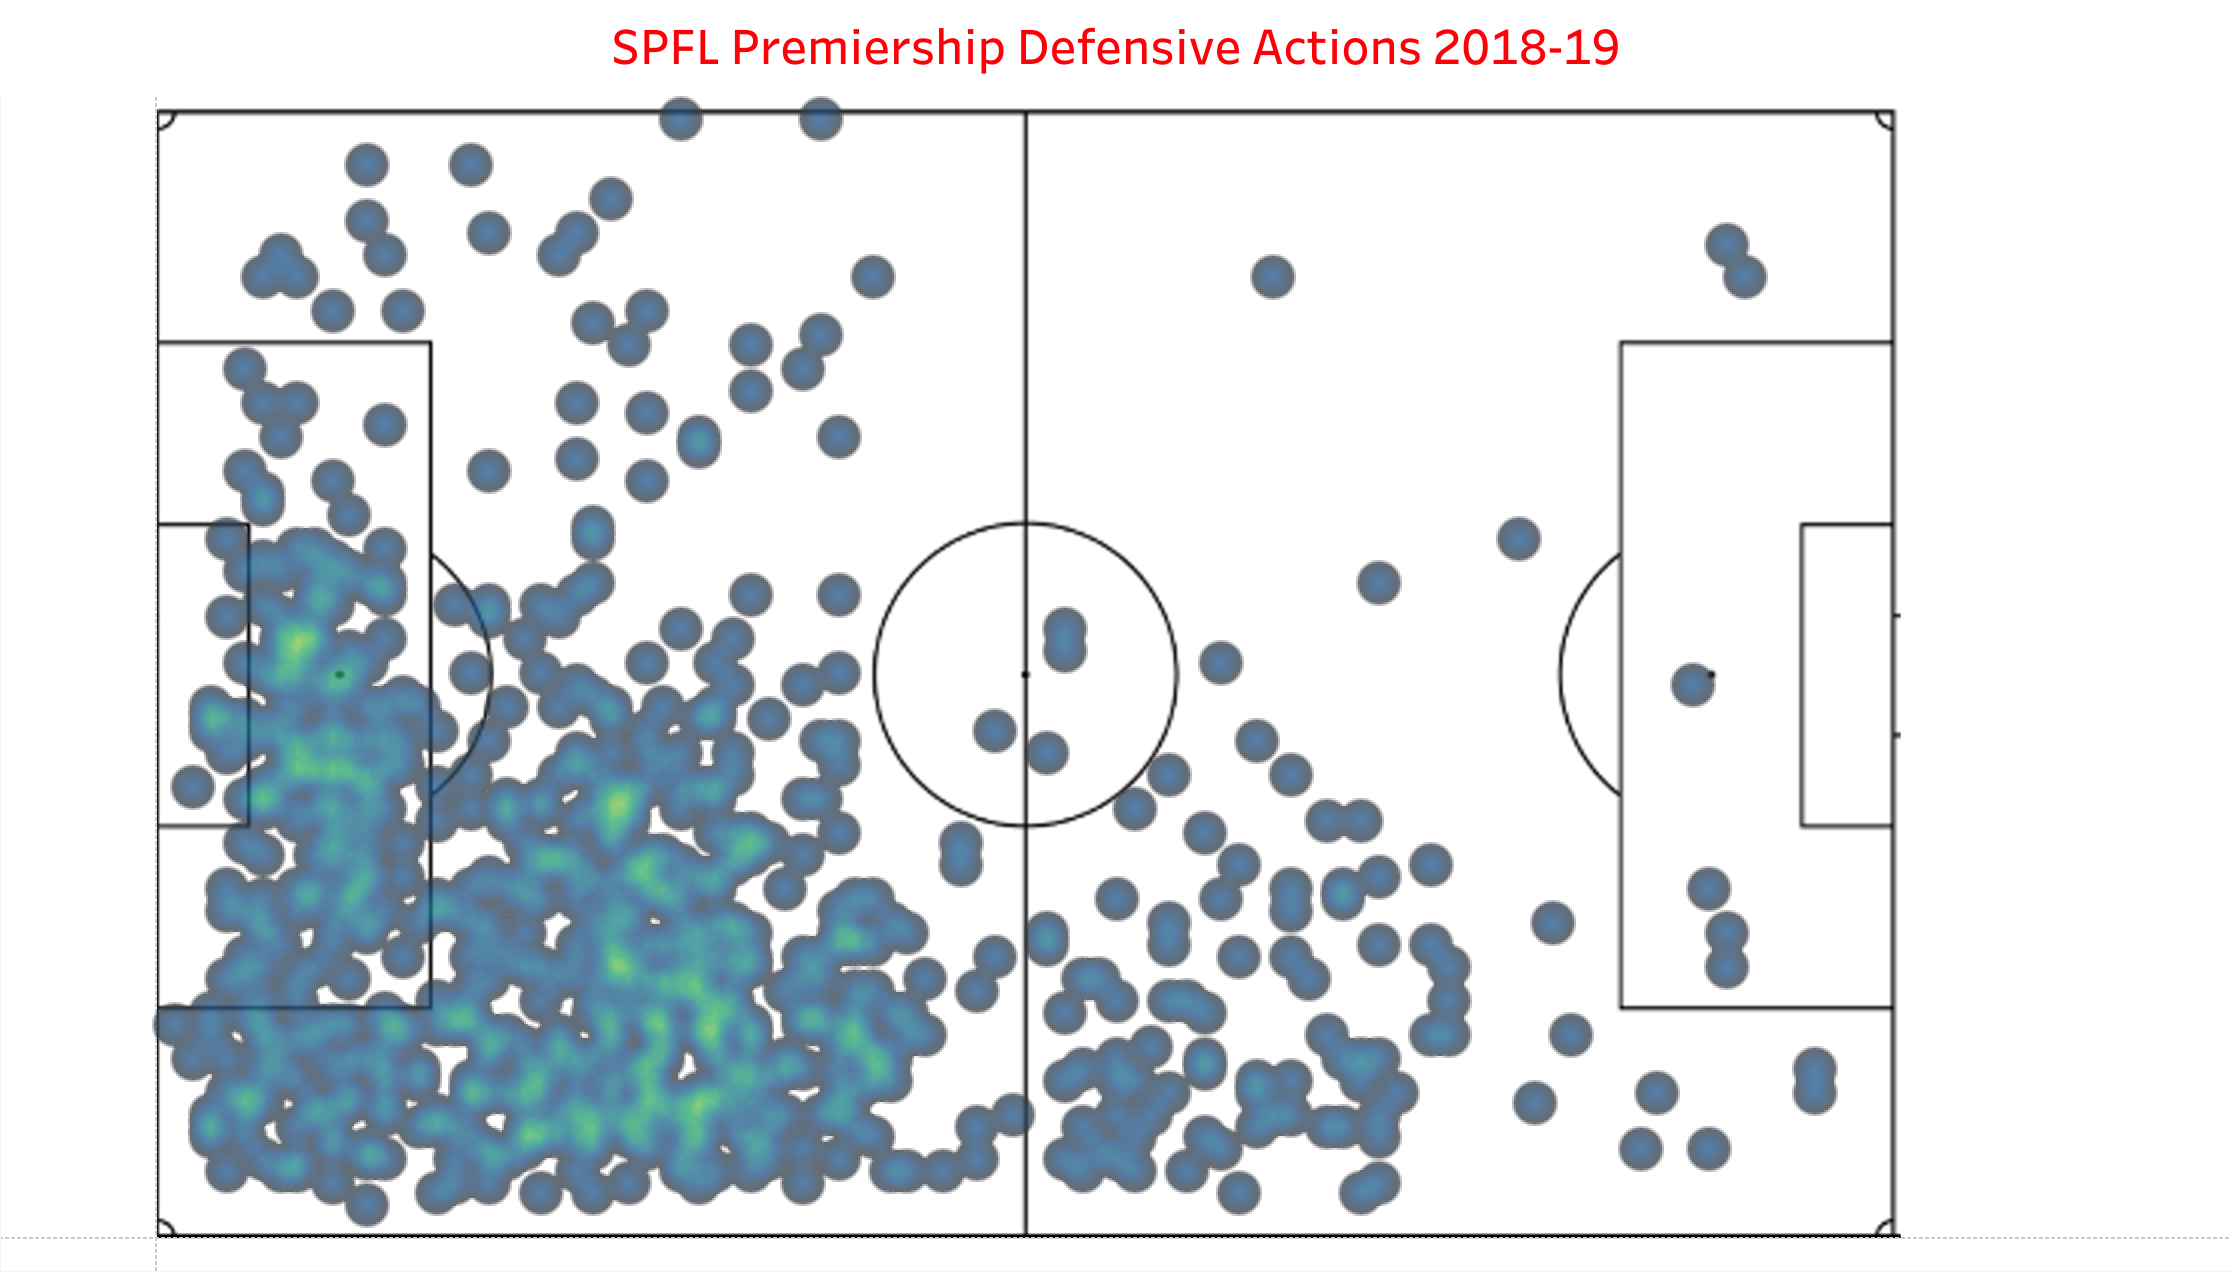 Heatmap of defensive actions for Declan Gallagher in 2018-19 in the SPFL Premiership. The lighter the color, the more defensive actions in that area.